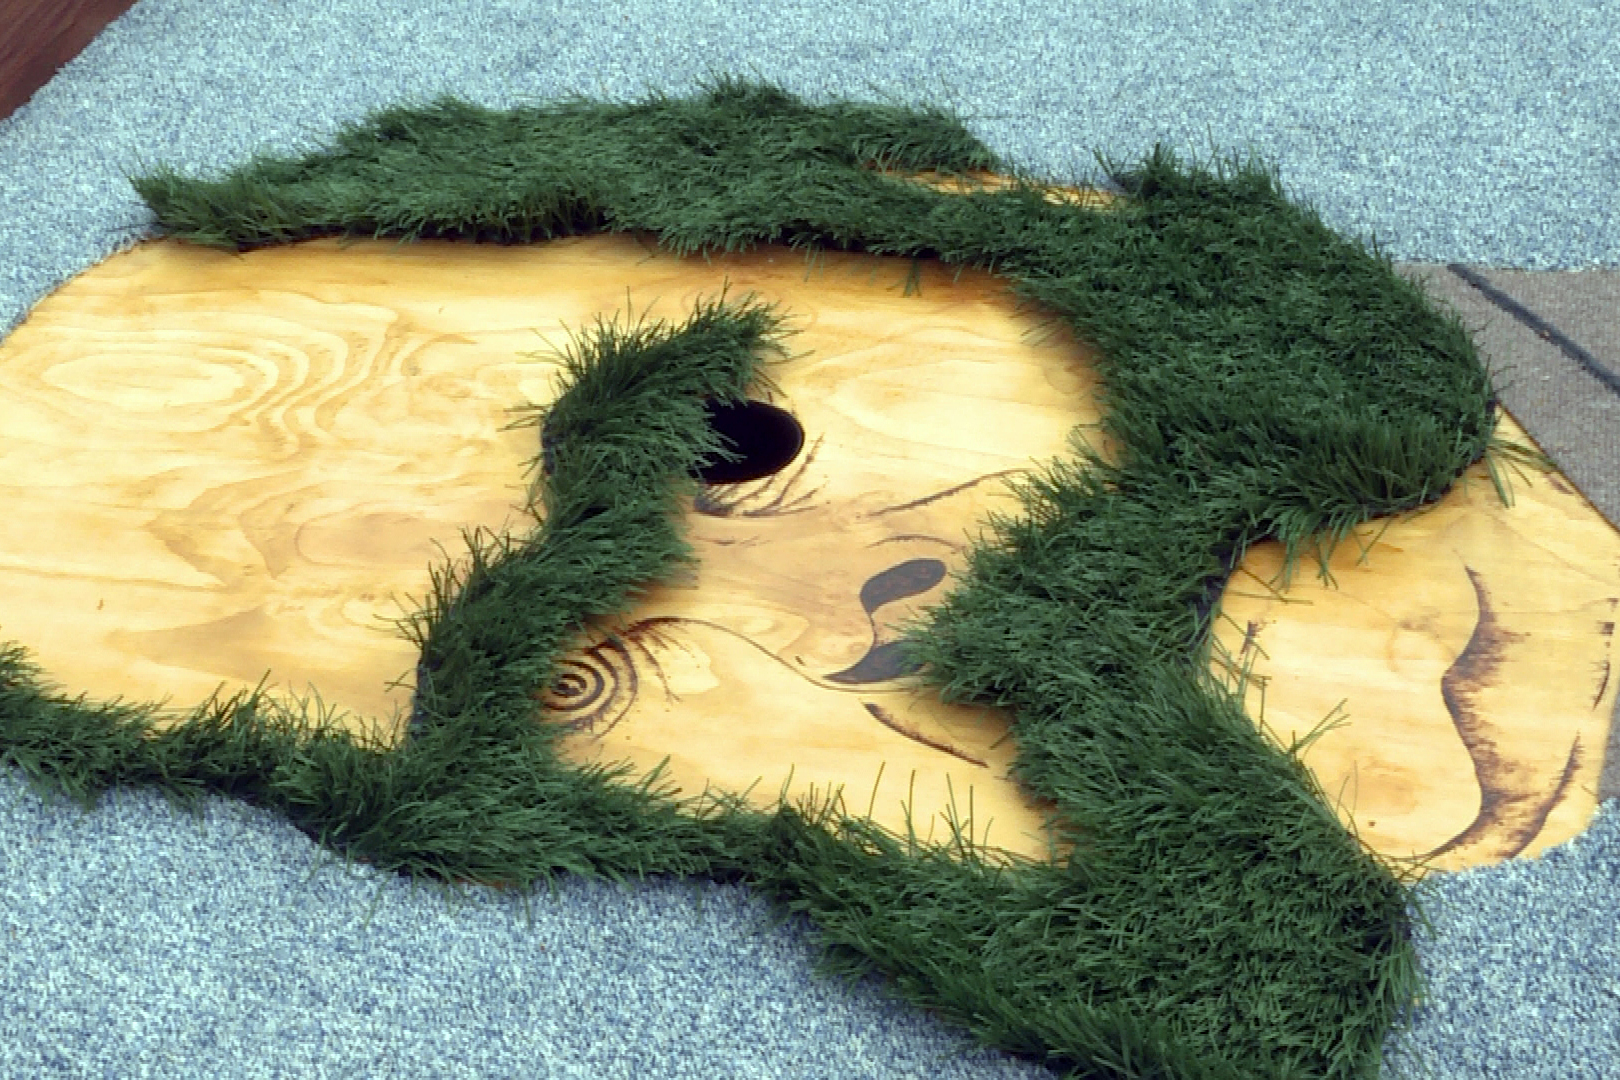 The course was built to be challenging and artistic.